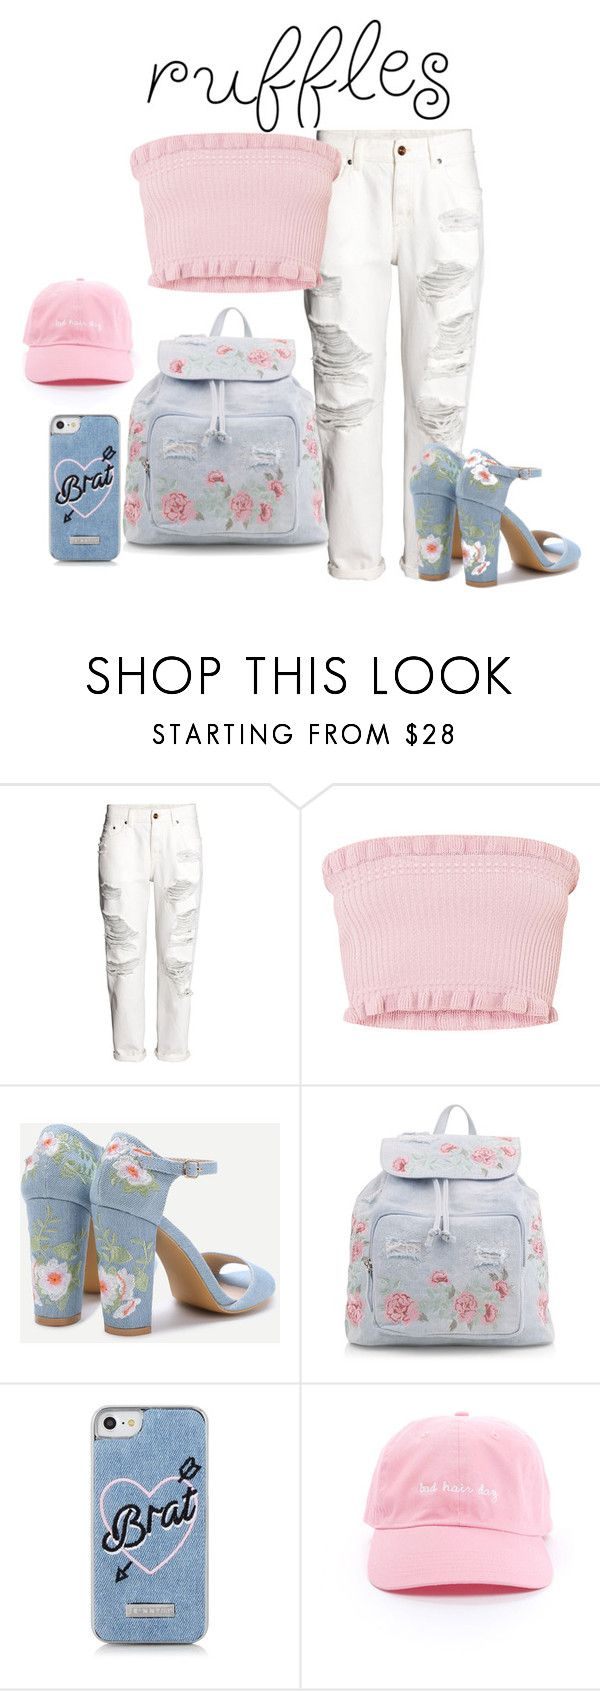 Ruffles by nicole-perestrelo21 on Polyvore featuring H&M, New Look, Skinnydip, Blue, floralprint and rufles